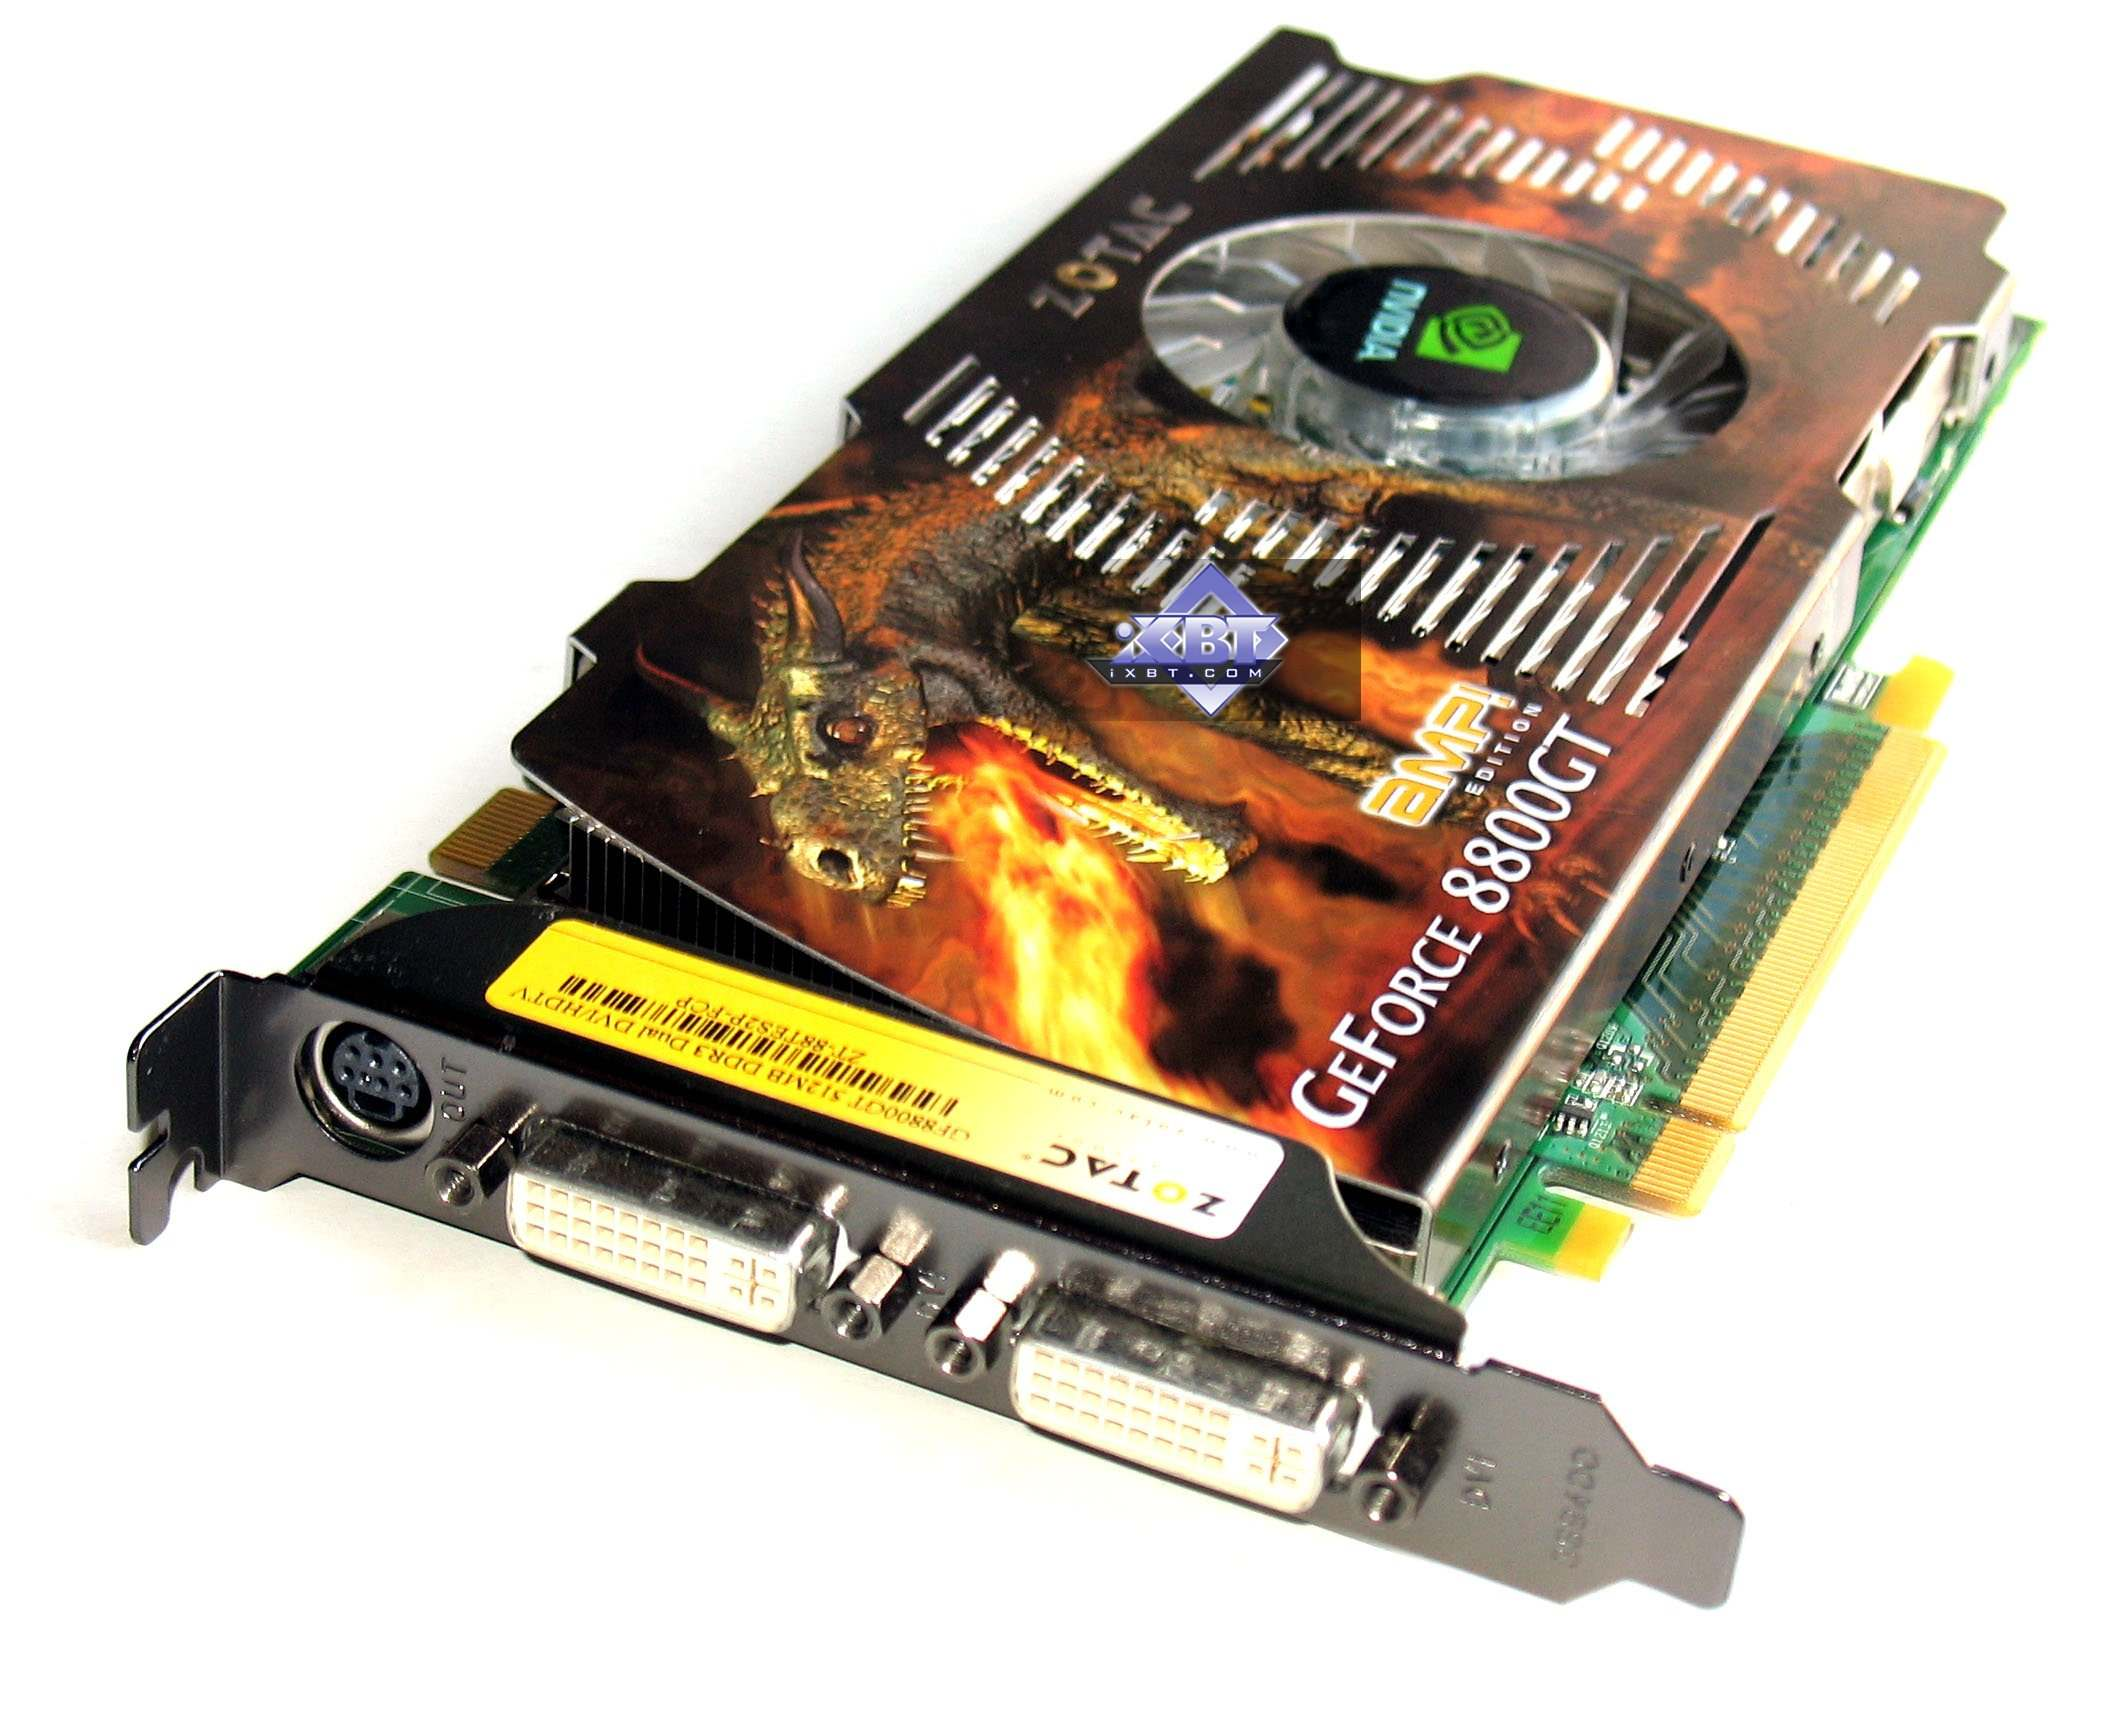 Video card nVidia Geforce 8800 GT: characteristics, comparison by competitors and reviews 73